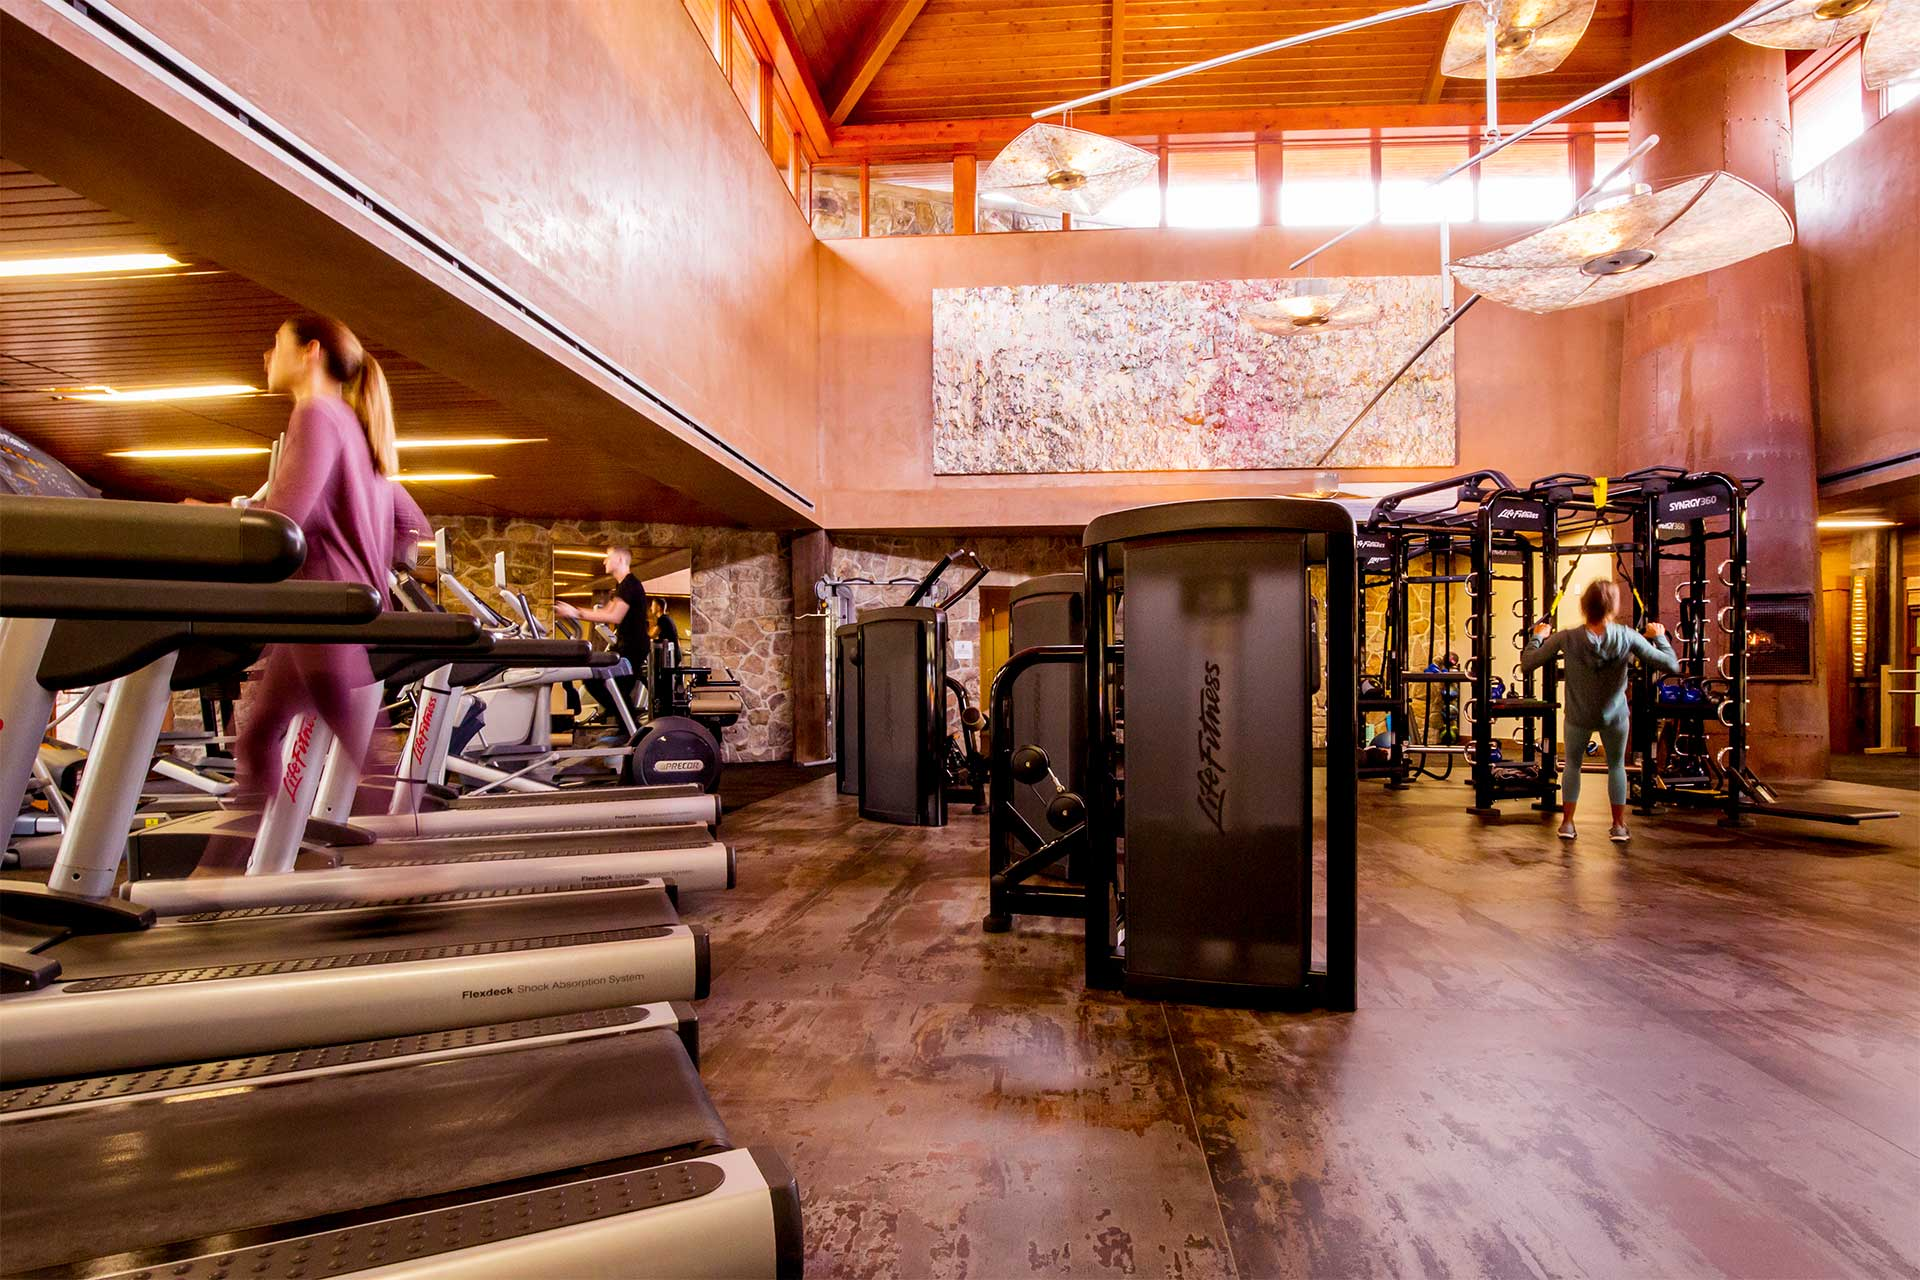 indoor gym with treadmills and weight machines